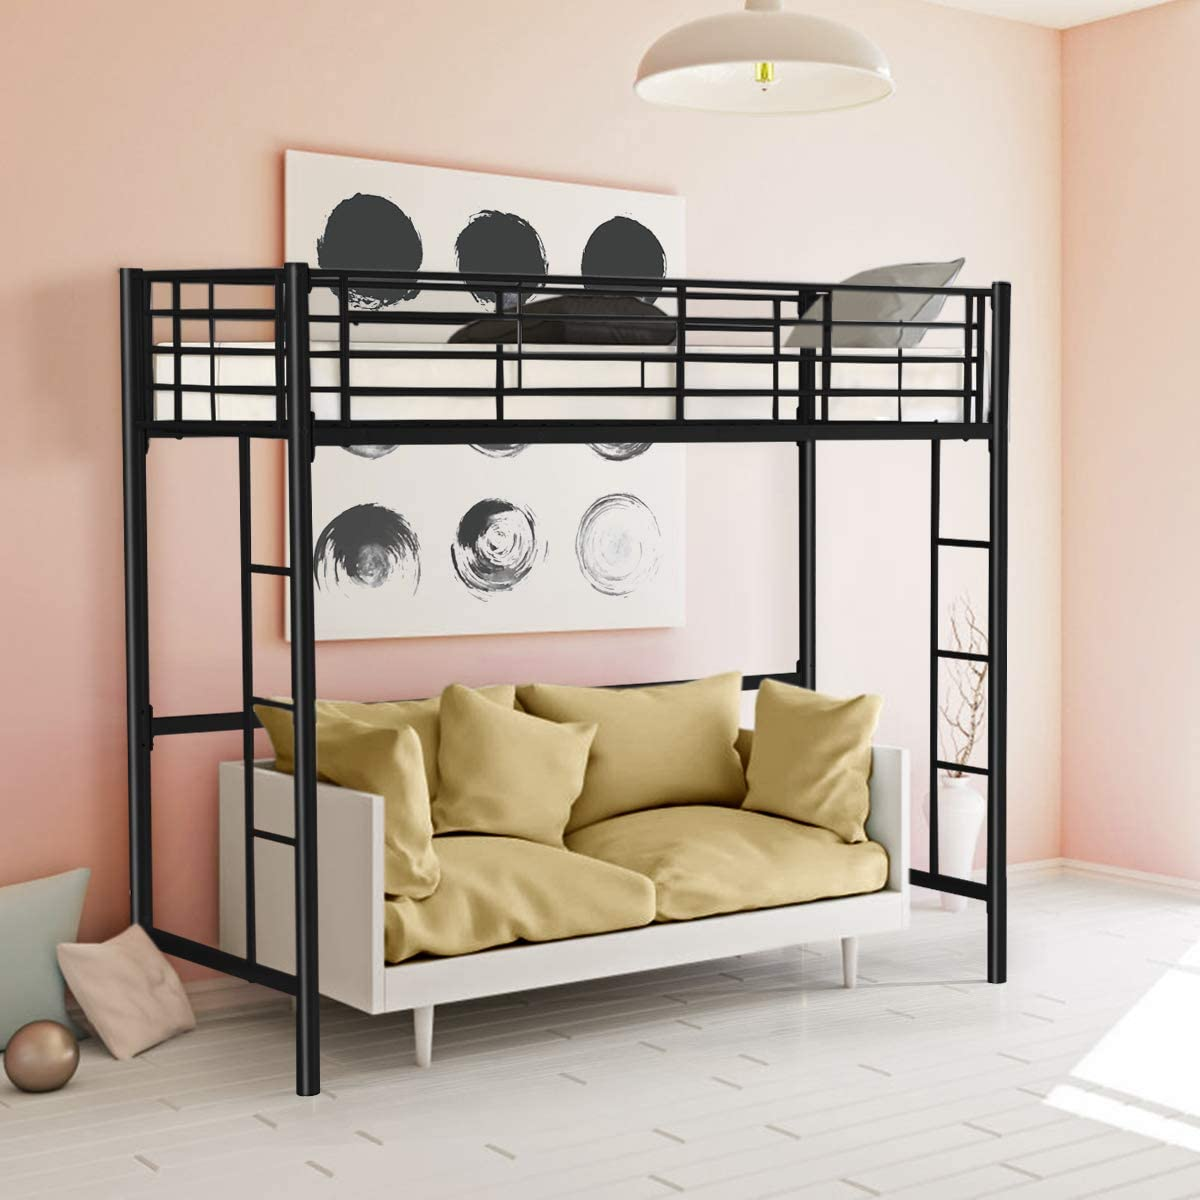 Casart 3ft High Bed With Twin Ladders And Safety Guardrail High Sleeper Household Space Saver Metal Bunk Bed Loft Frame For Boys Girls Teens Kids Bedroom Dorm Black Amazon Co Uk Kitchen